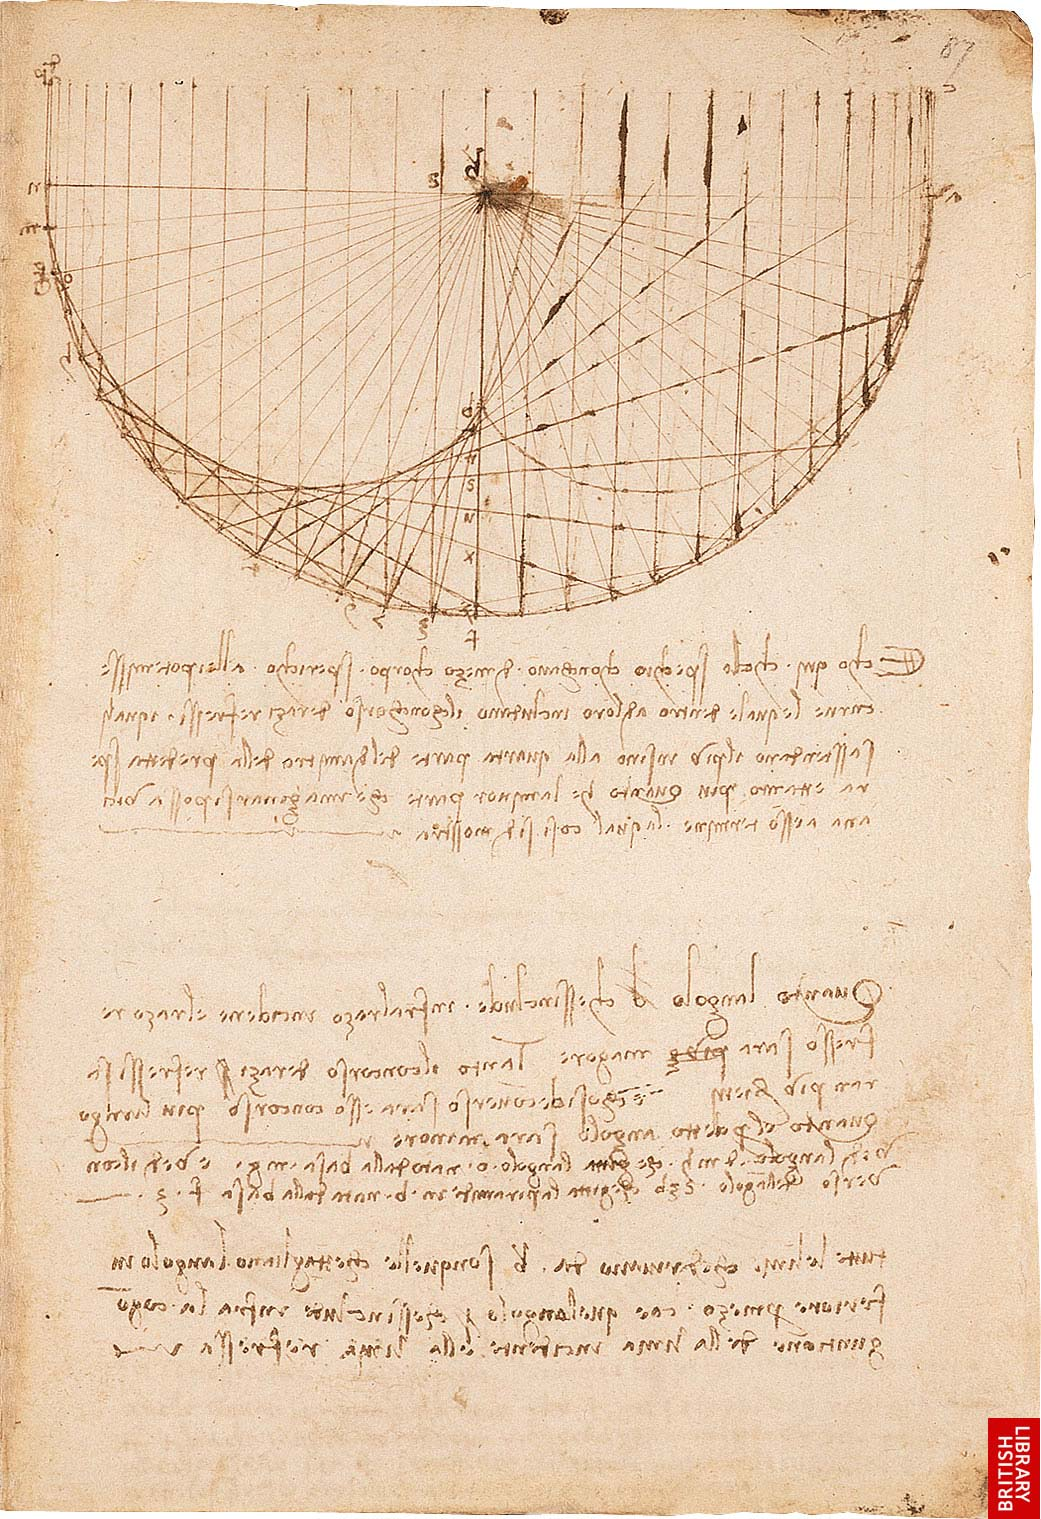 short paper about leonardo da vinci essay With being talented artists of the renaissance both michelangelo and leonardo da vinci had the dream of bringing art to its original form but with different perspectives on how to portray their art, michelangelo and leonardo demonstrated their creations differently.